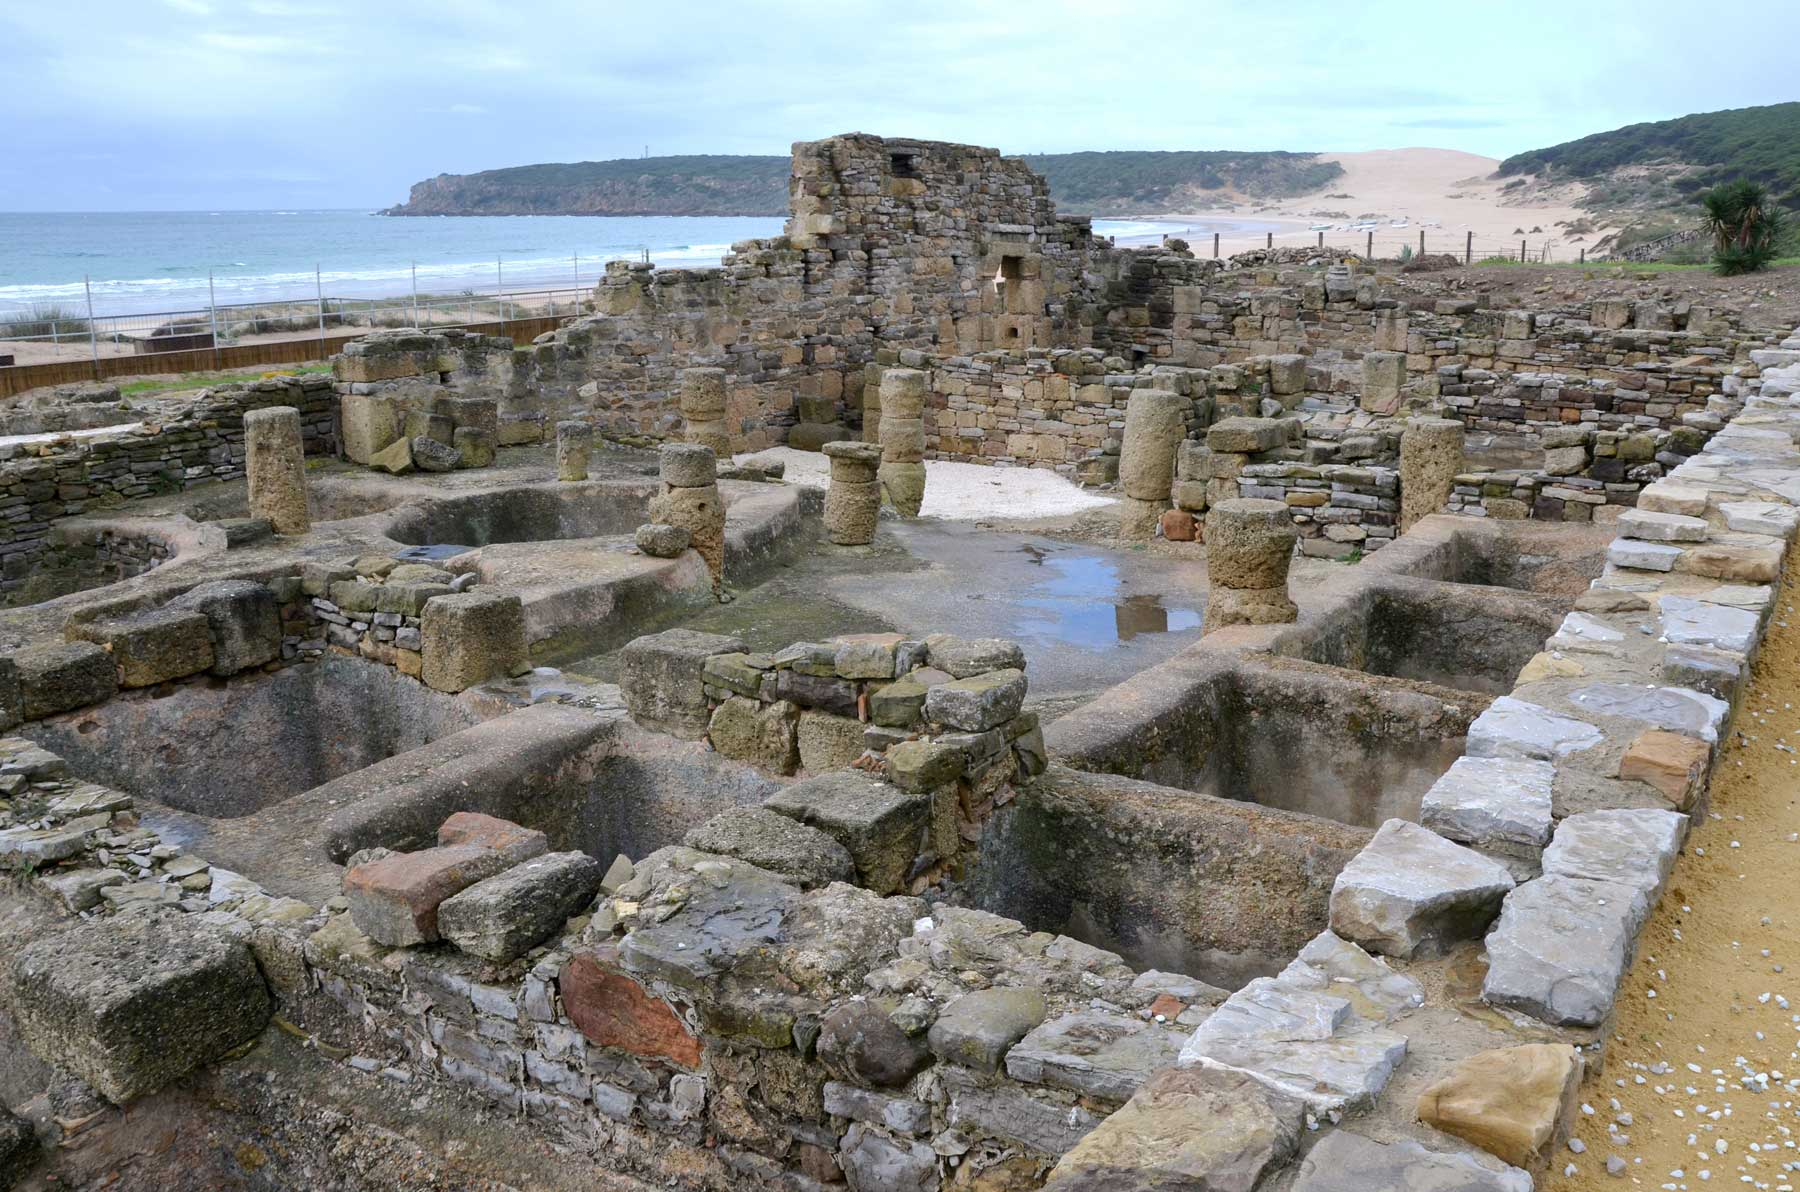 Garum factory at Baelo Claudia, Baetica, Spain